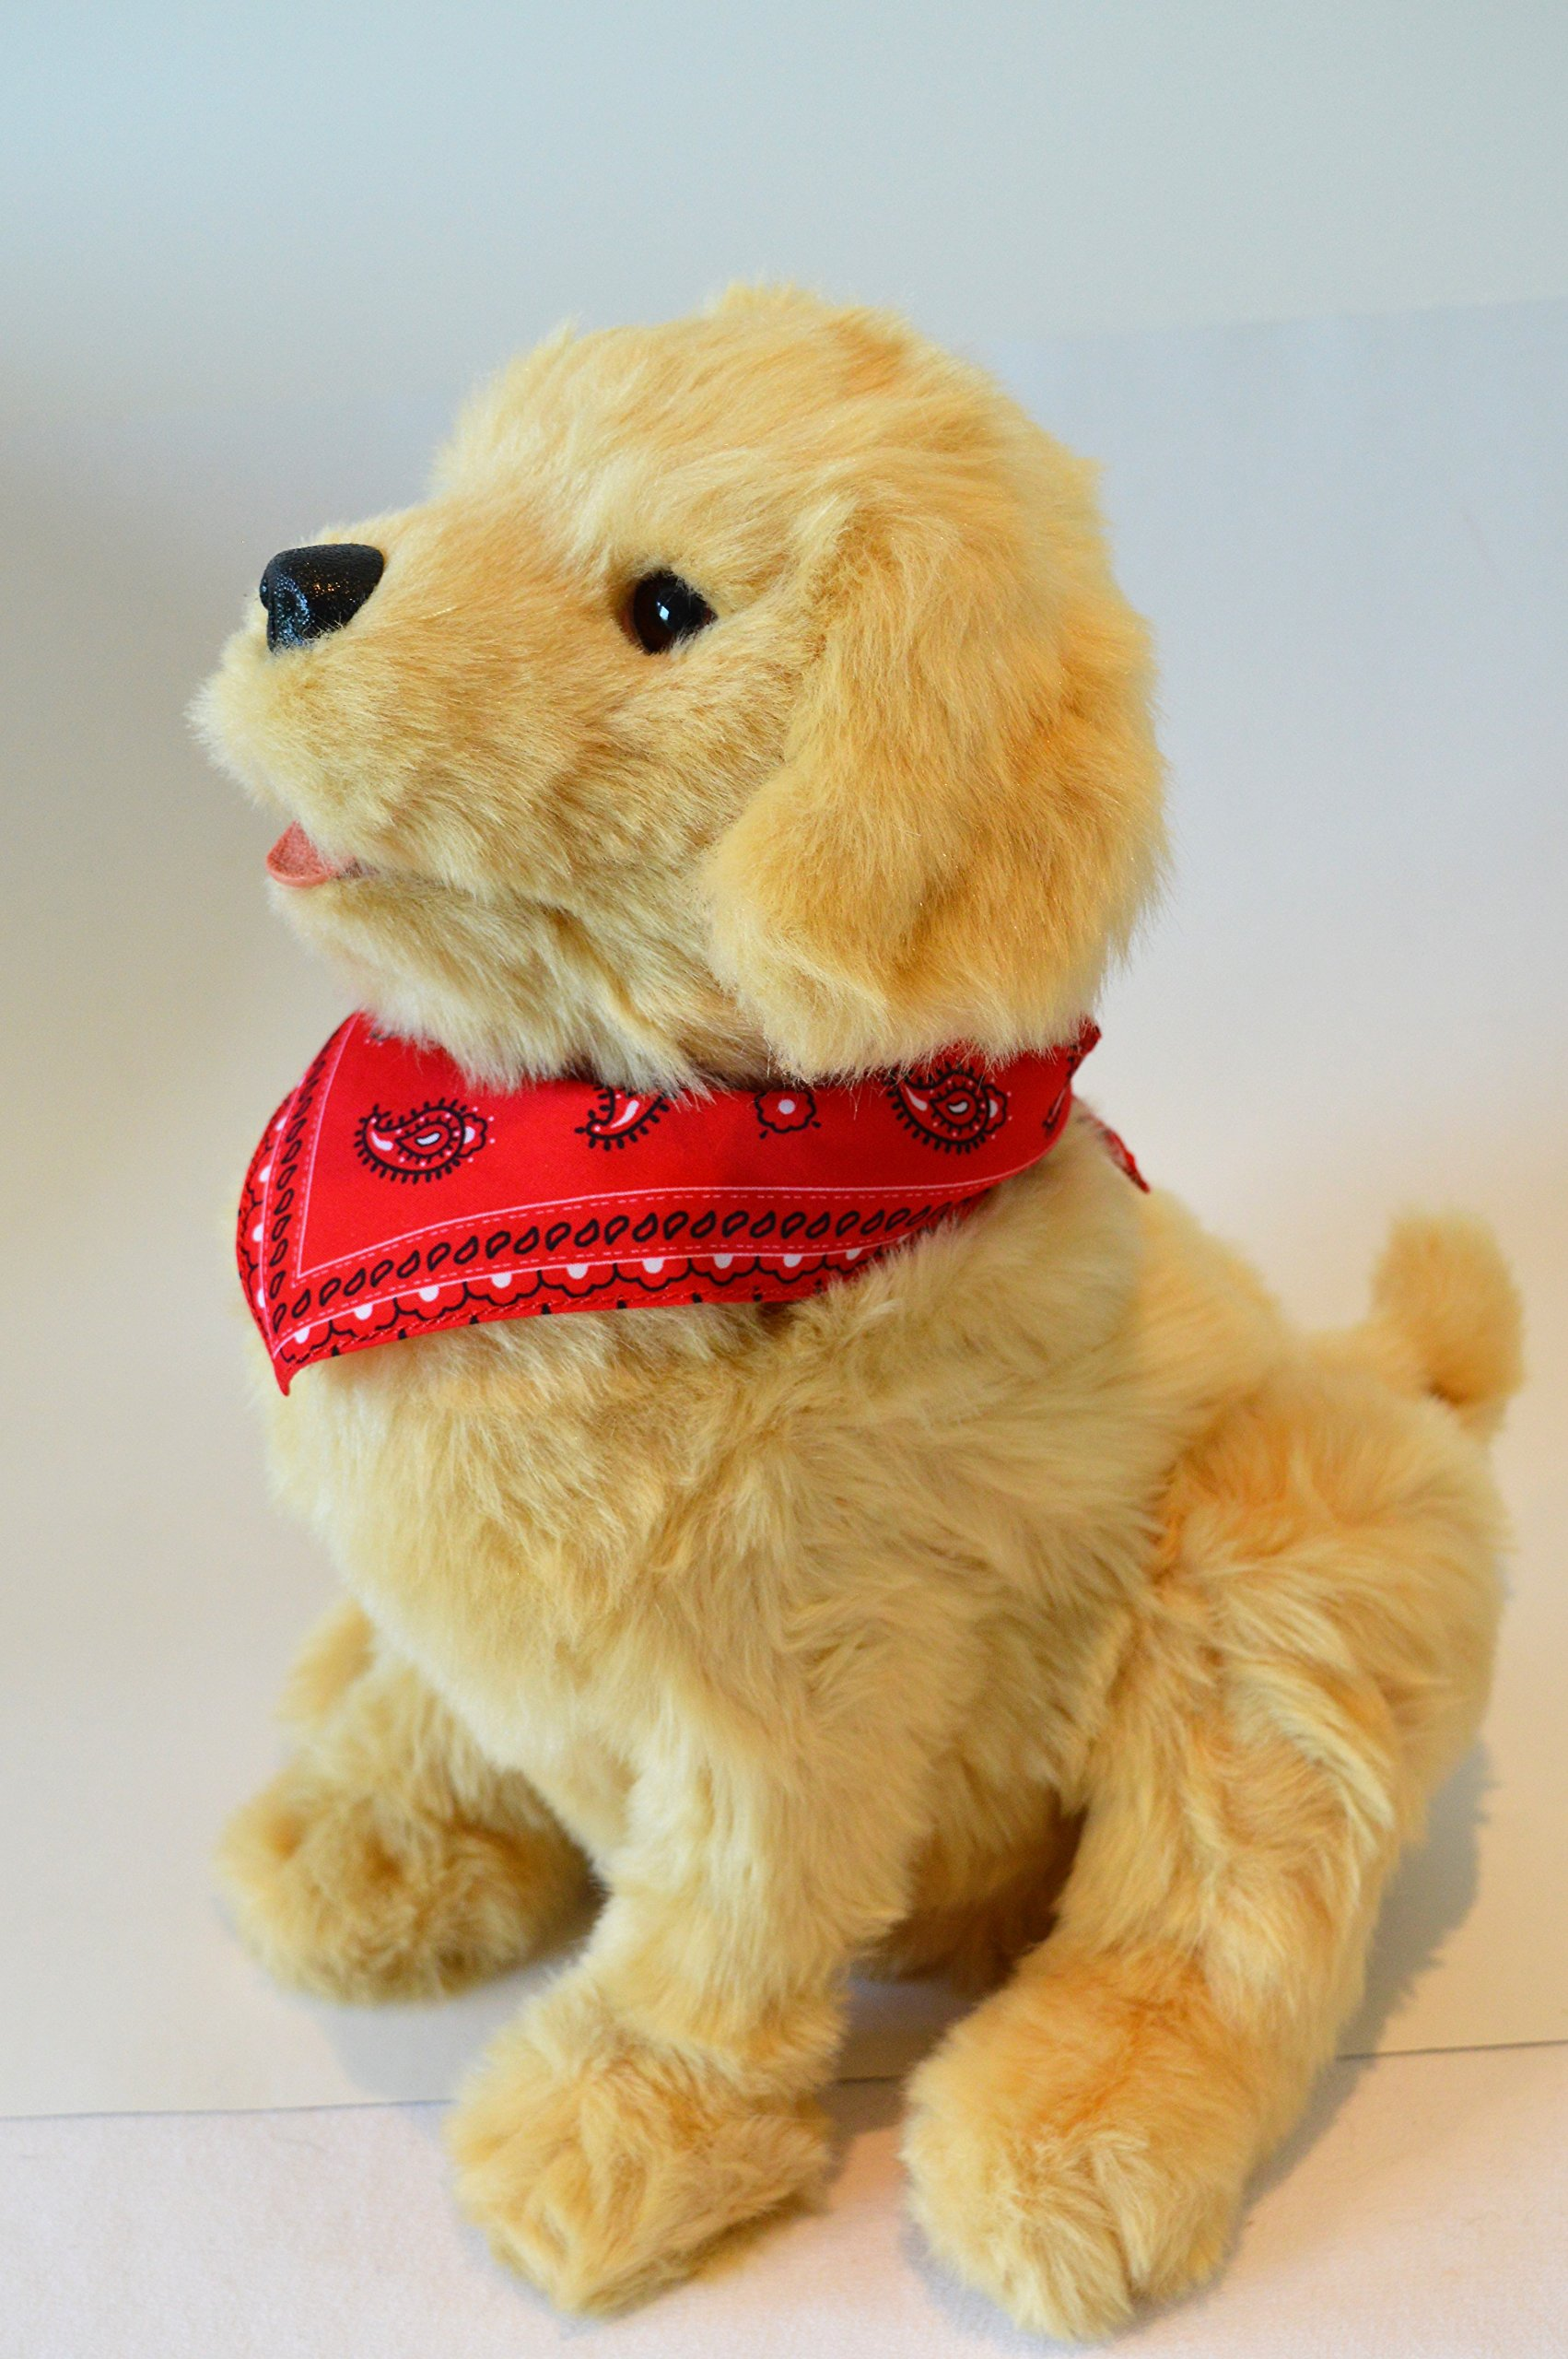 Joy For All Robotic Sitting Golden Dog - Stuffed Animal Therapy for People with Memory Loss from Aging and Caregivers